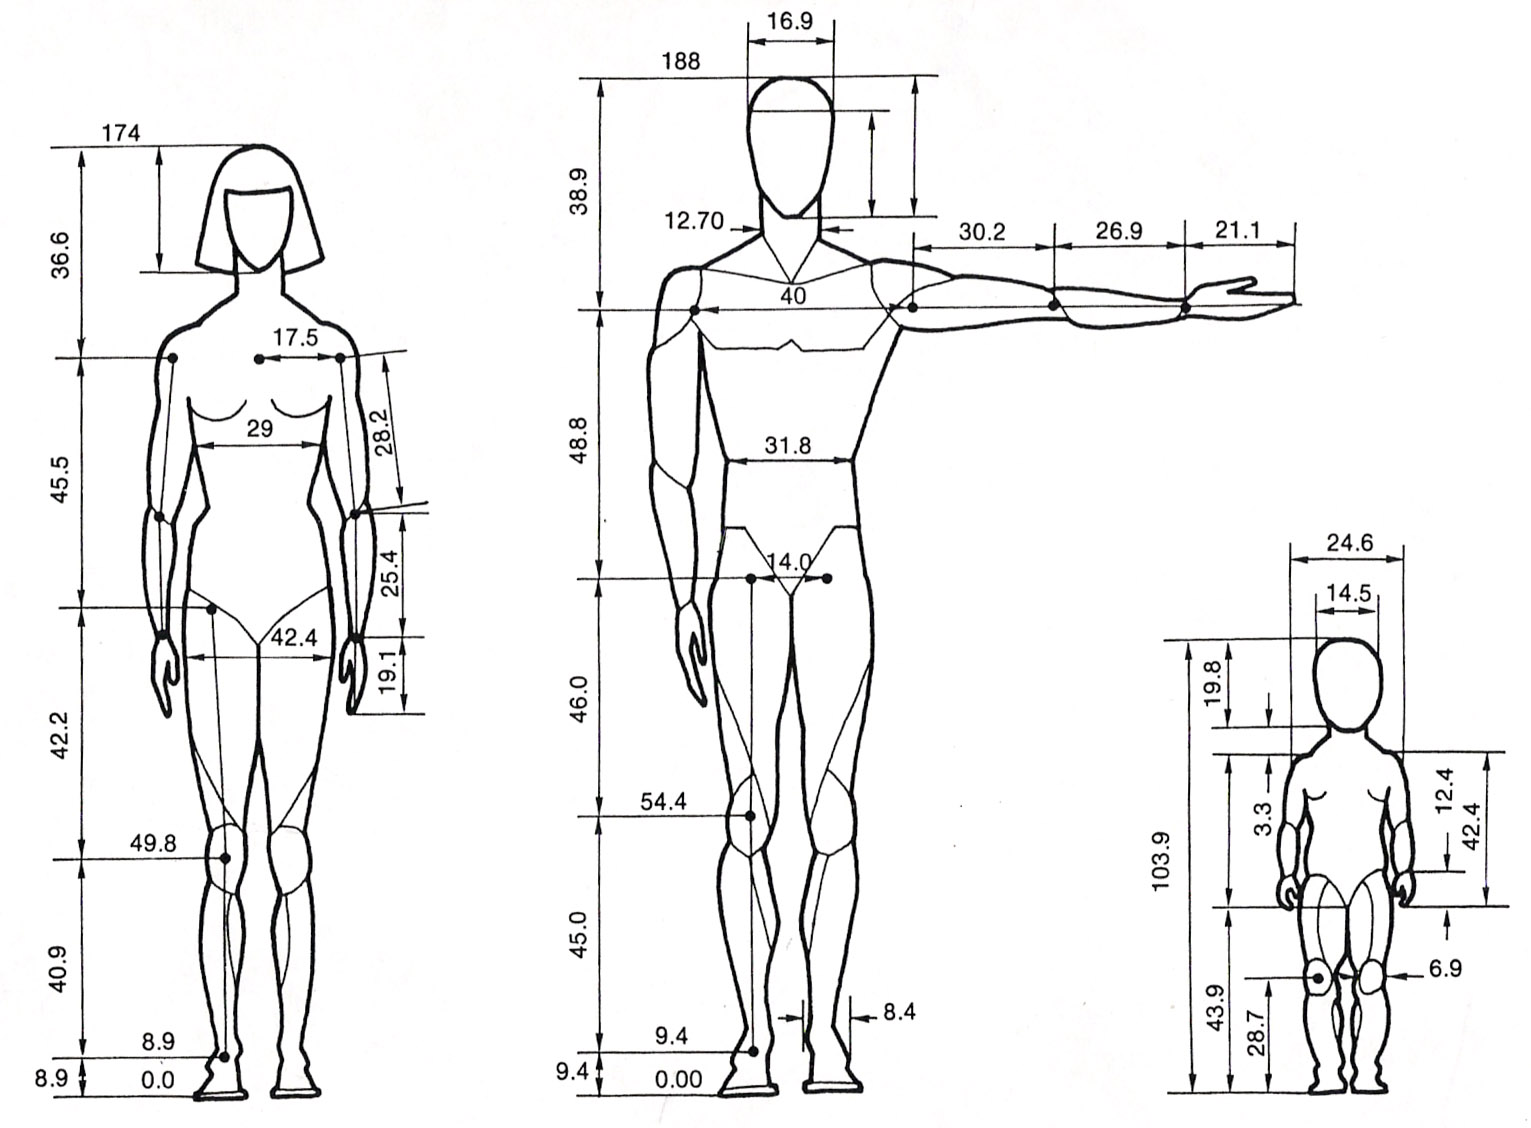 Human_proportions_by_BenTs_sTock.jpg